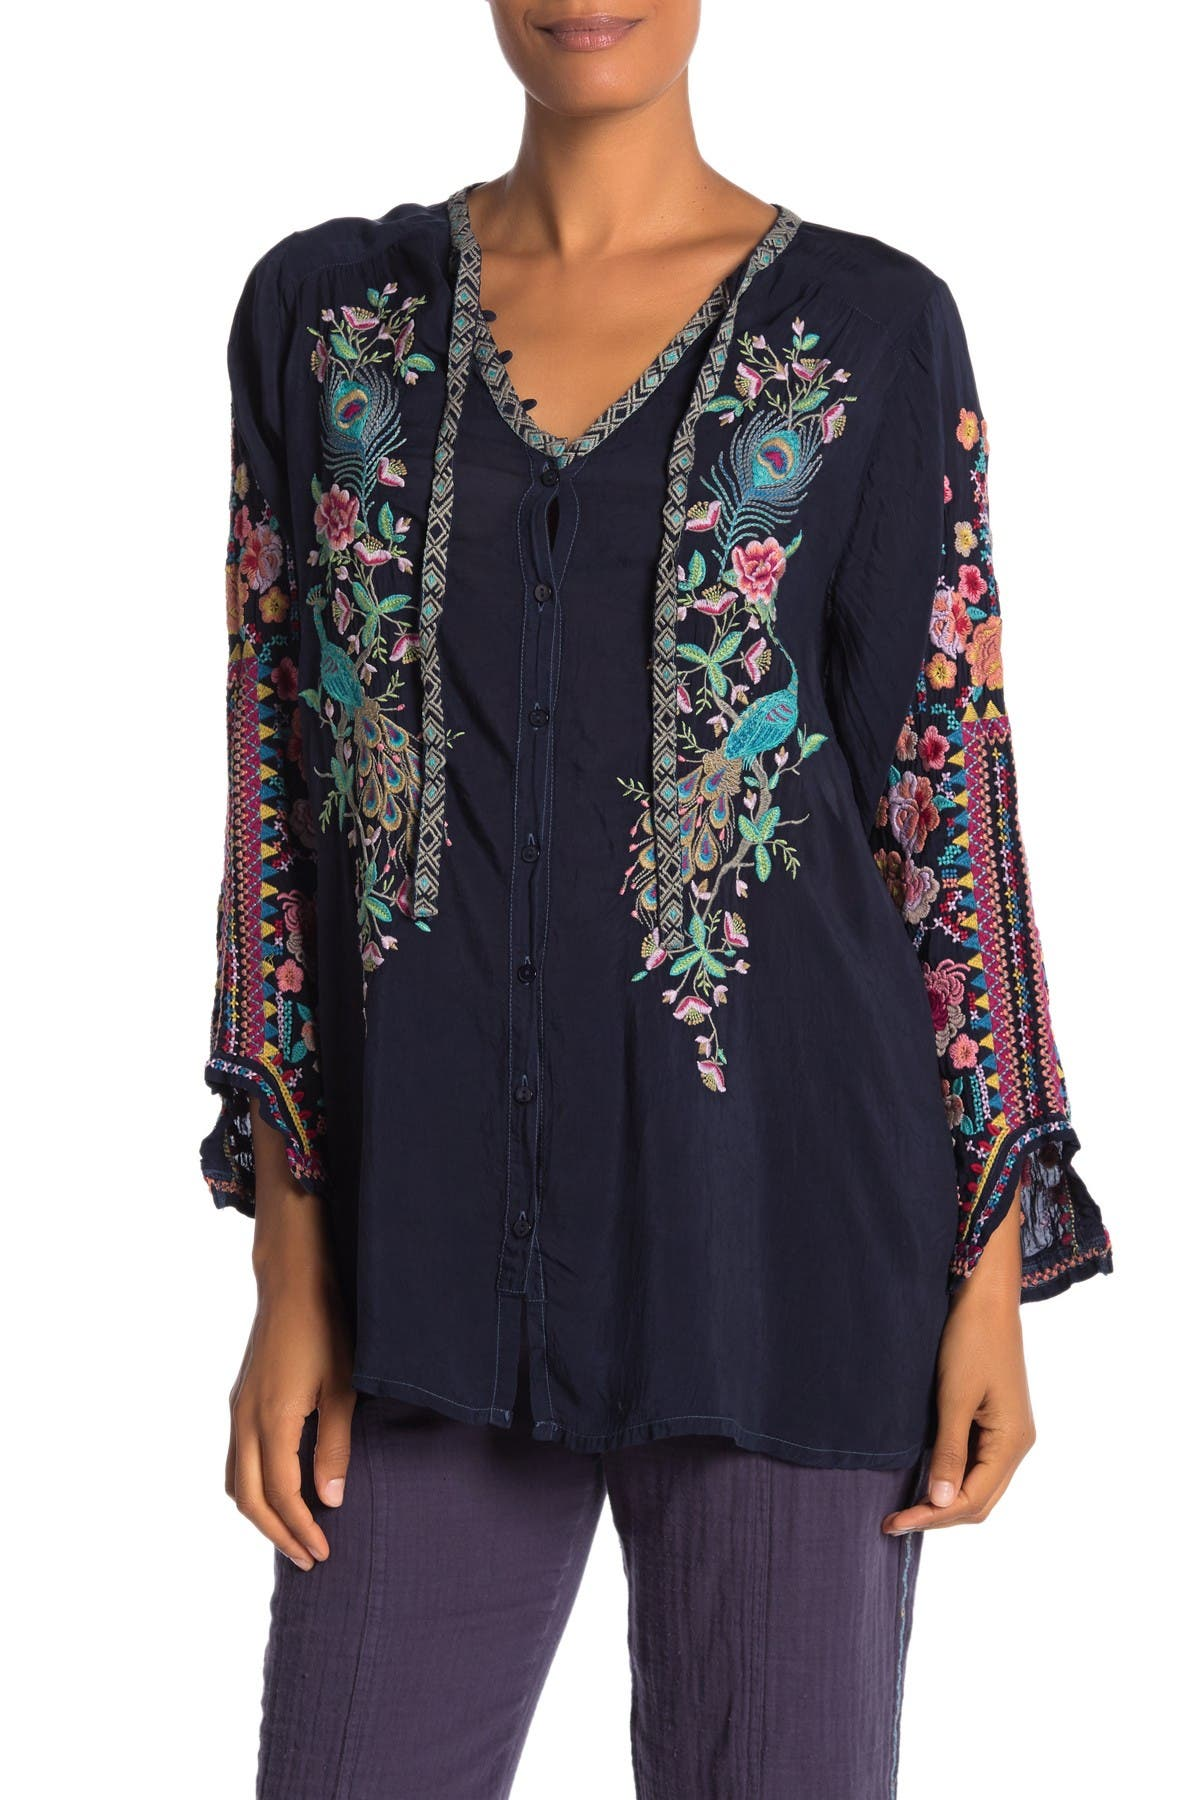 Image of Johnny Was Peacock Sable Embroidered Blouse